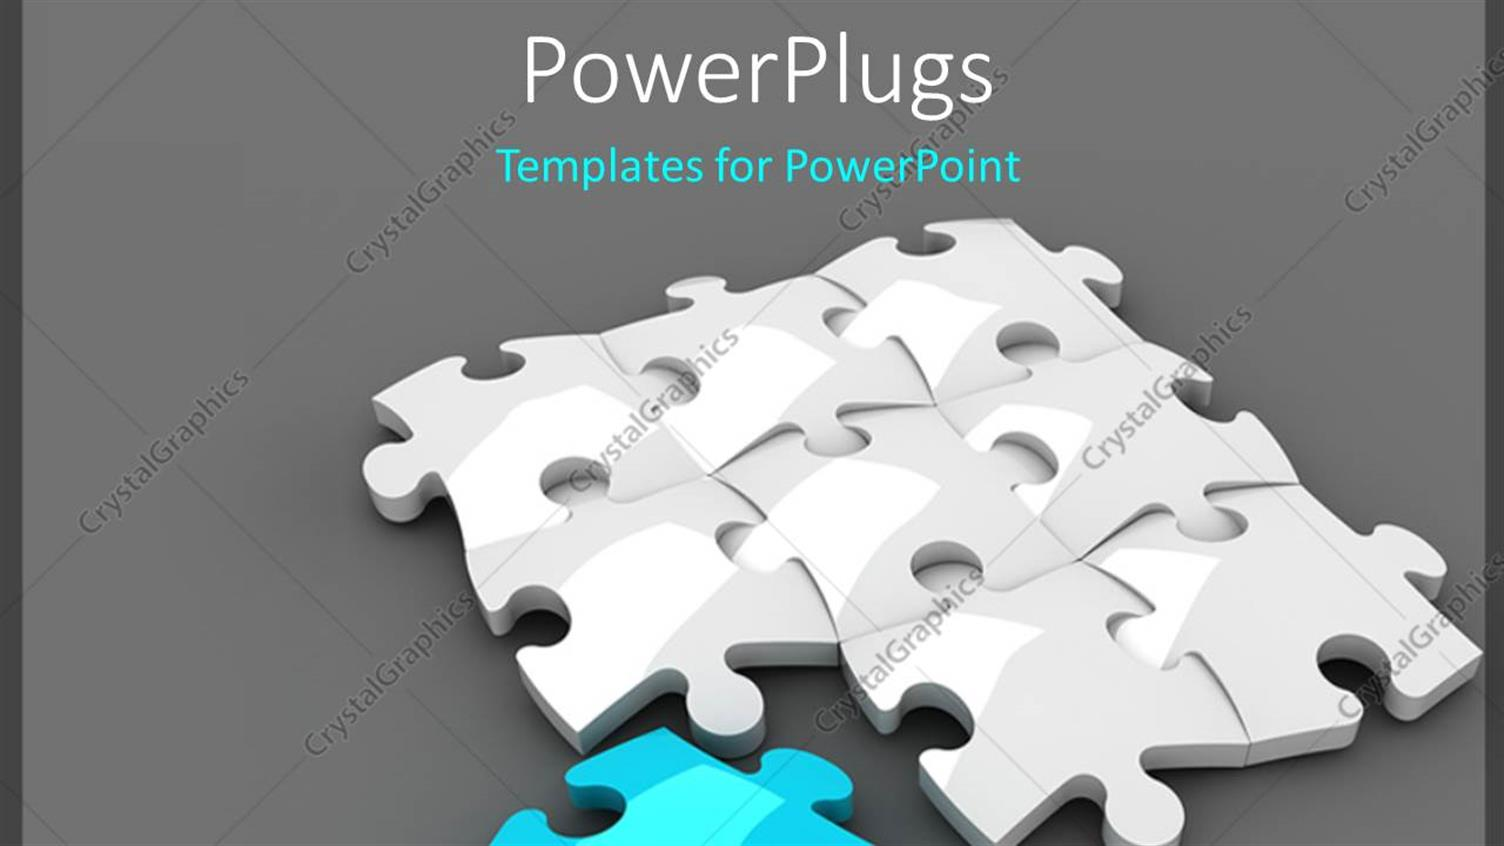 PowerPoint Template Displaying White Jigsaw Puzzle with a Blue Piece on Grey Background with Shadow